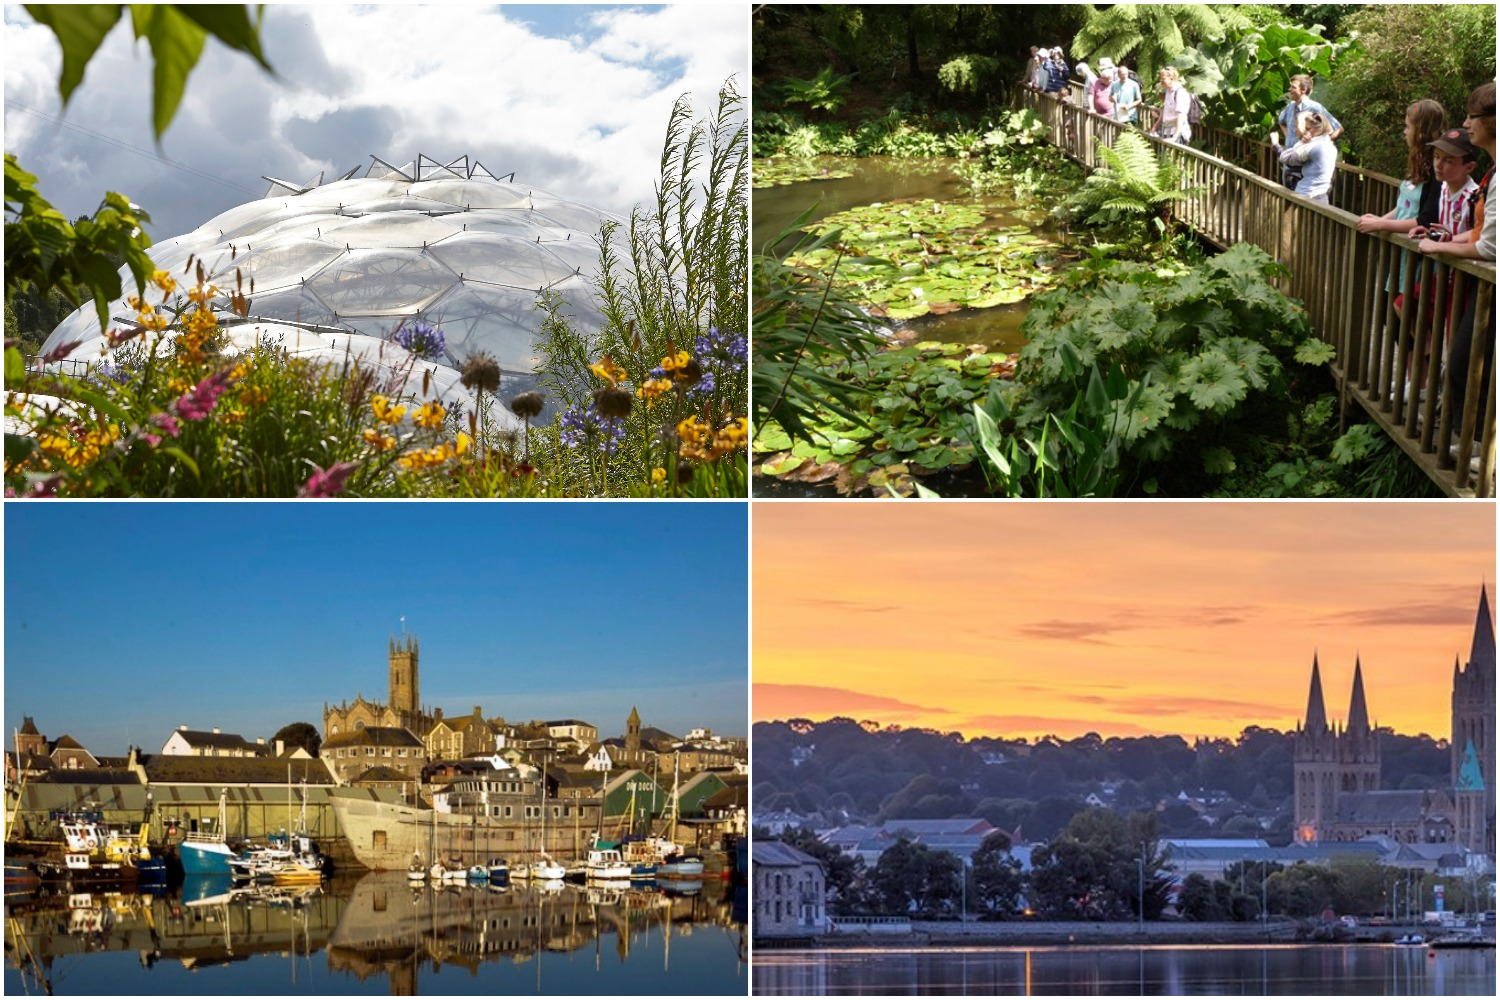 Eden Project, Lost Gardens of Heligan, Penzance & St Erth